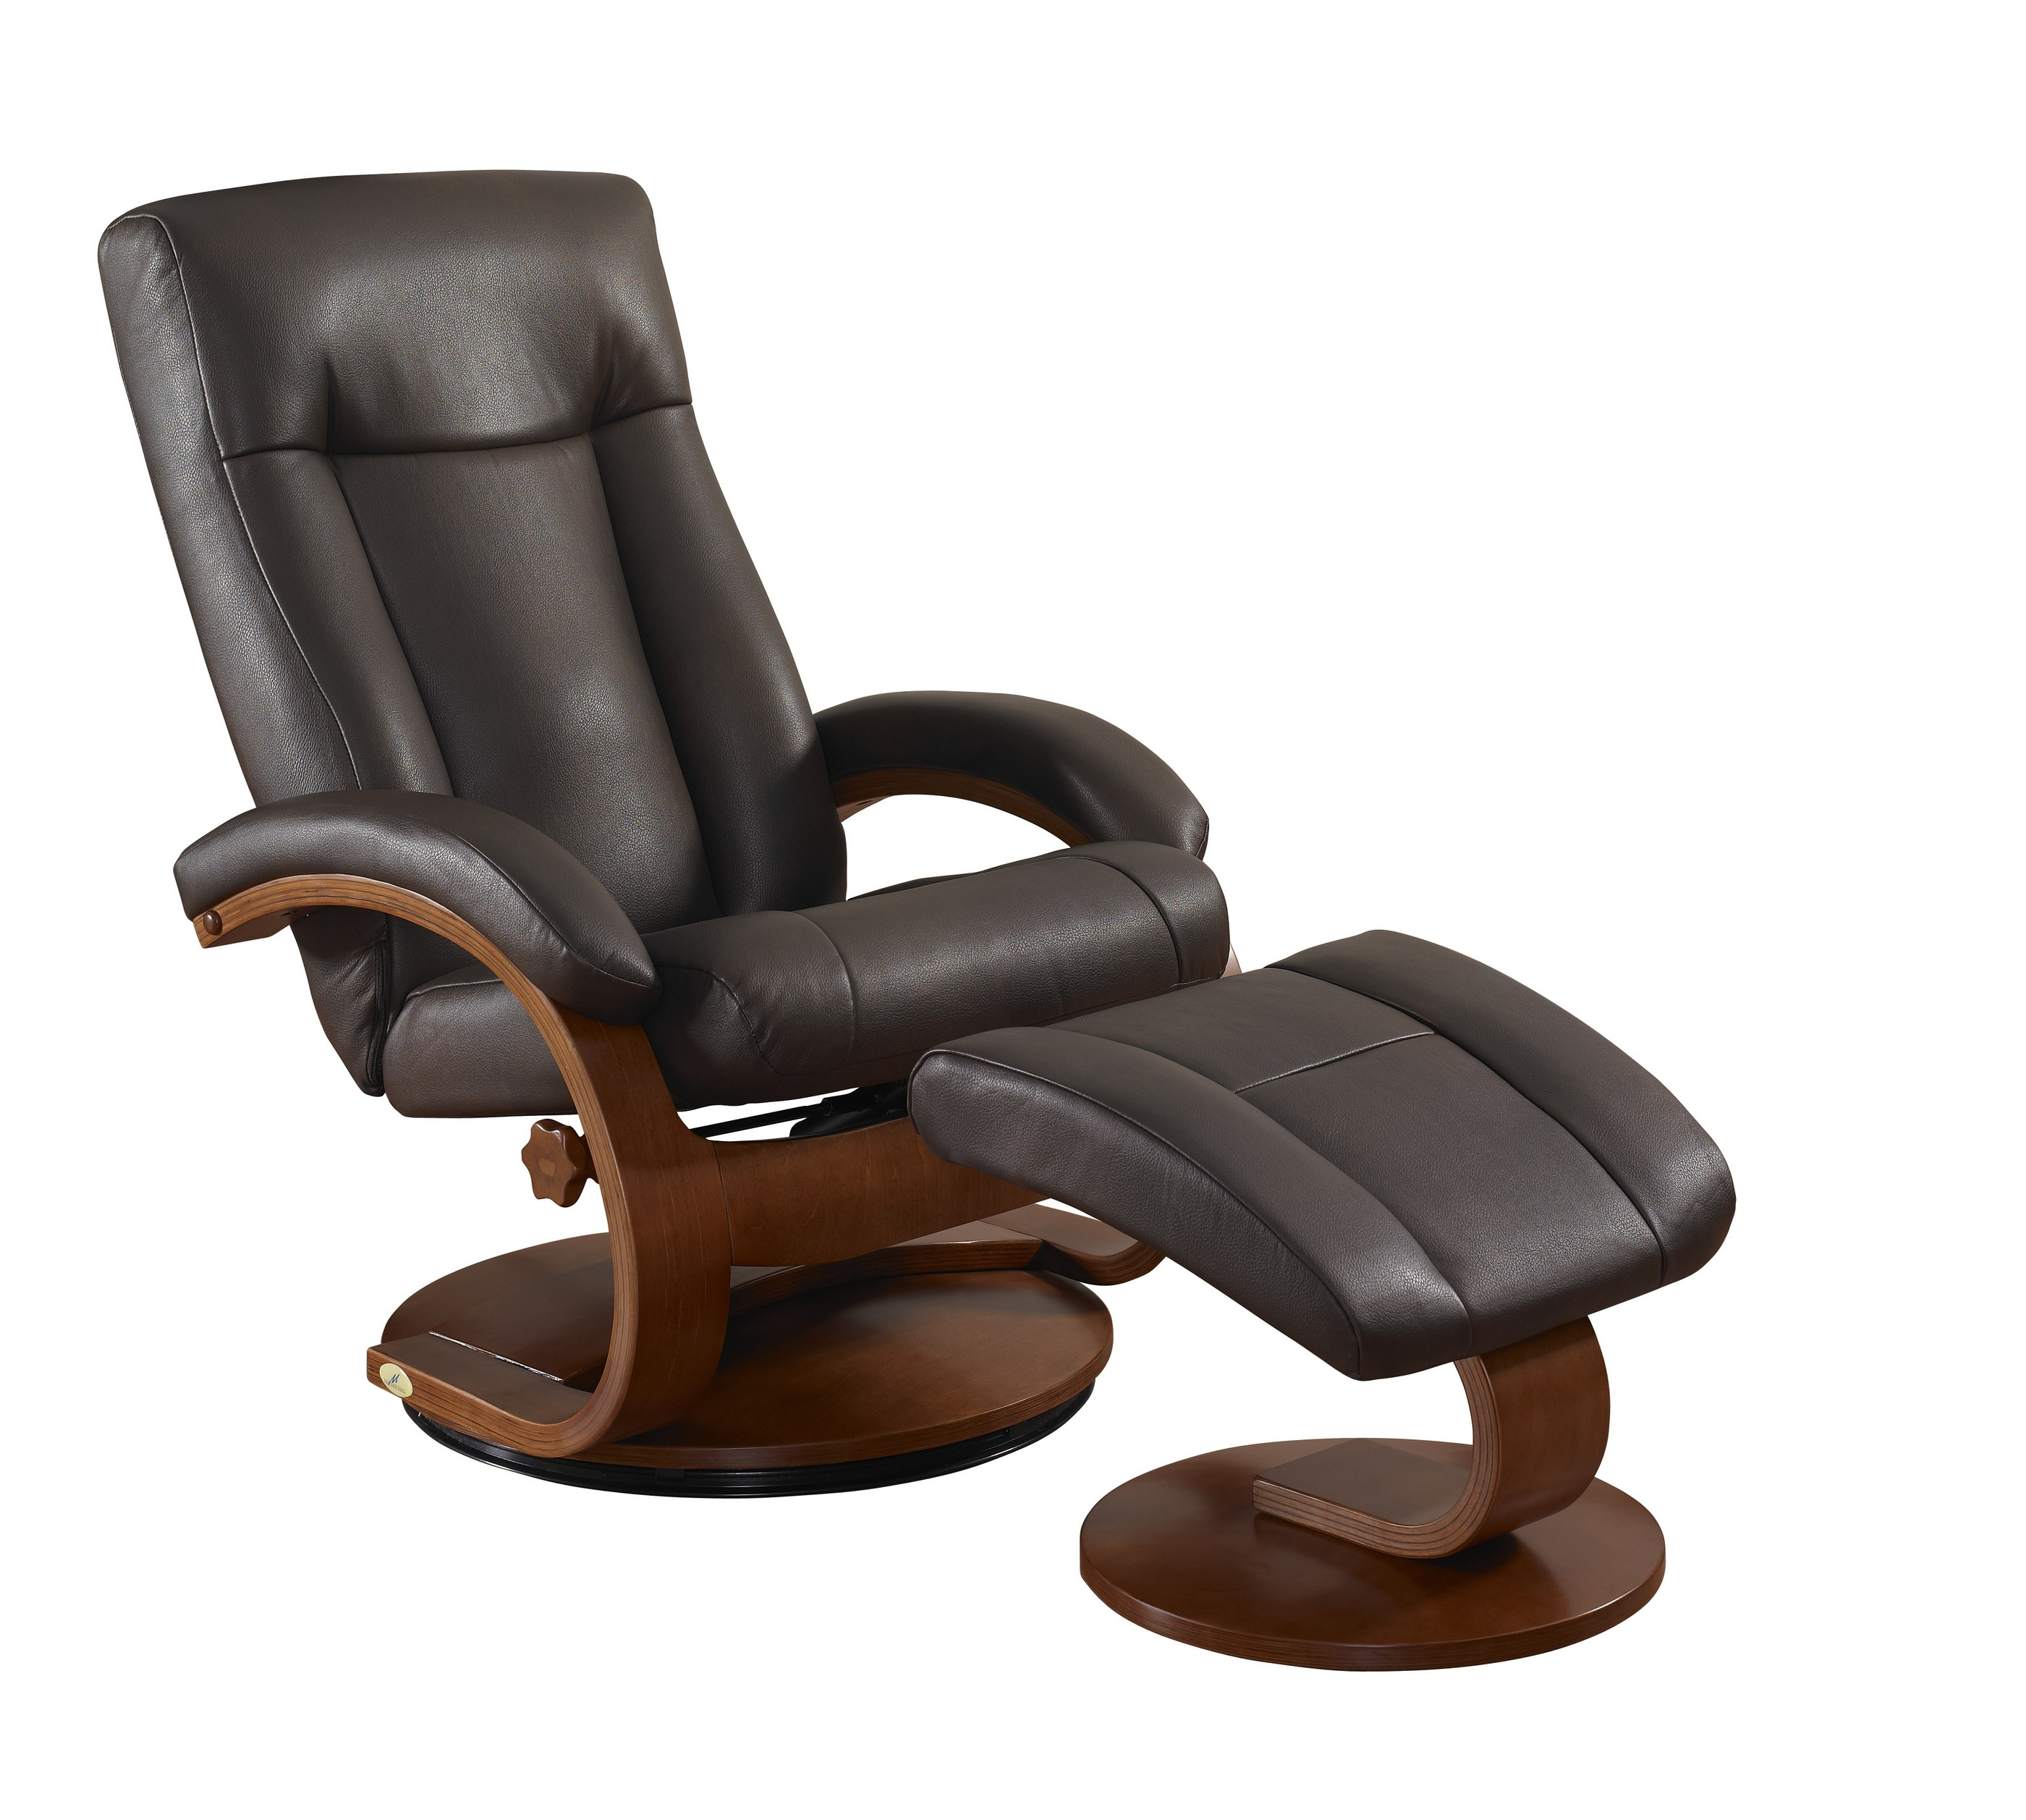 Oslo collection massage recliner 5400 with ottoman for E motion therapy massage recliners